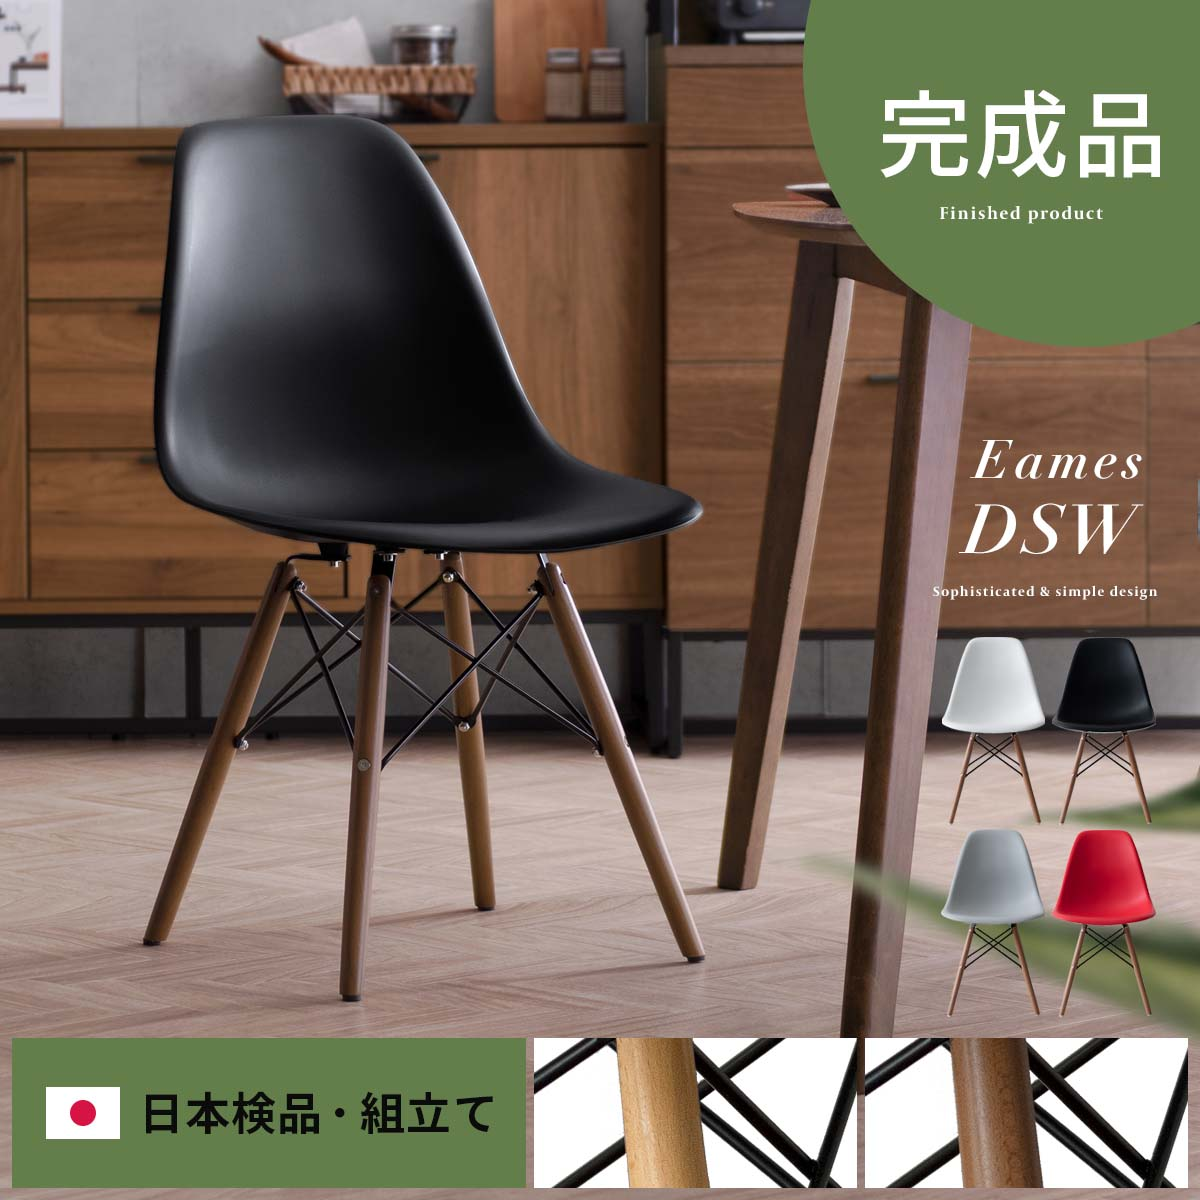 Eames Chair Dsw Chair Finished Product Wooden Reprography And Consultant Duct Dining Chair Chair Chair Fashion Eames Dsw Wood Leg Design White Red